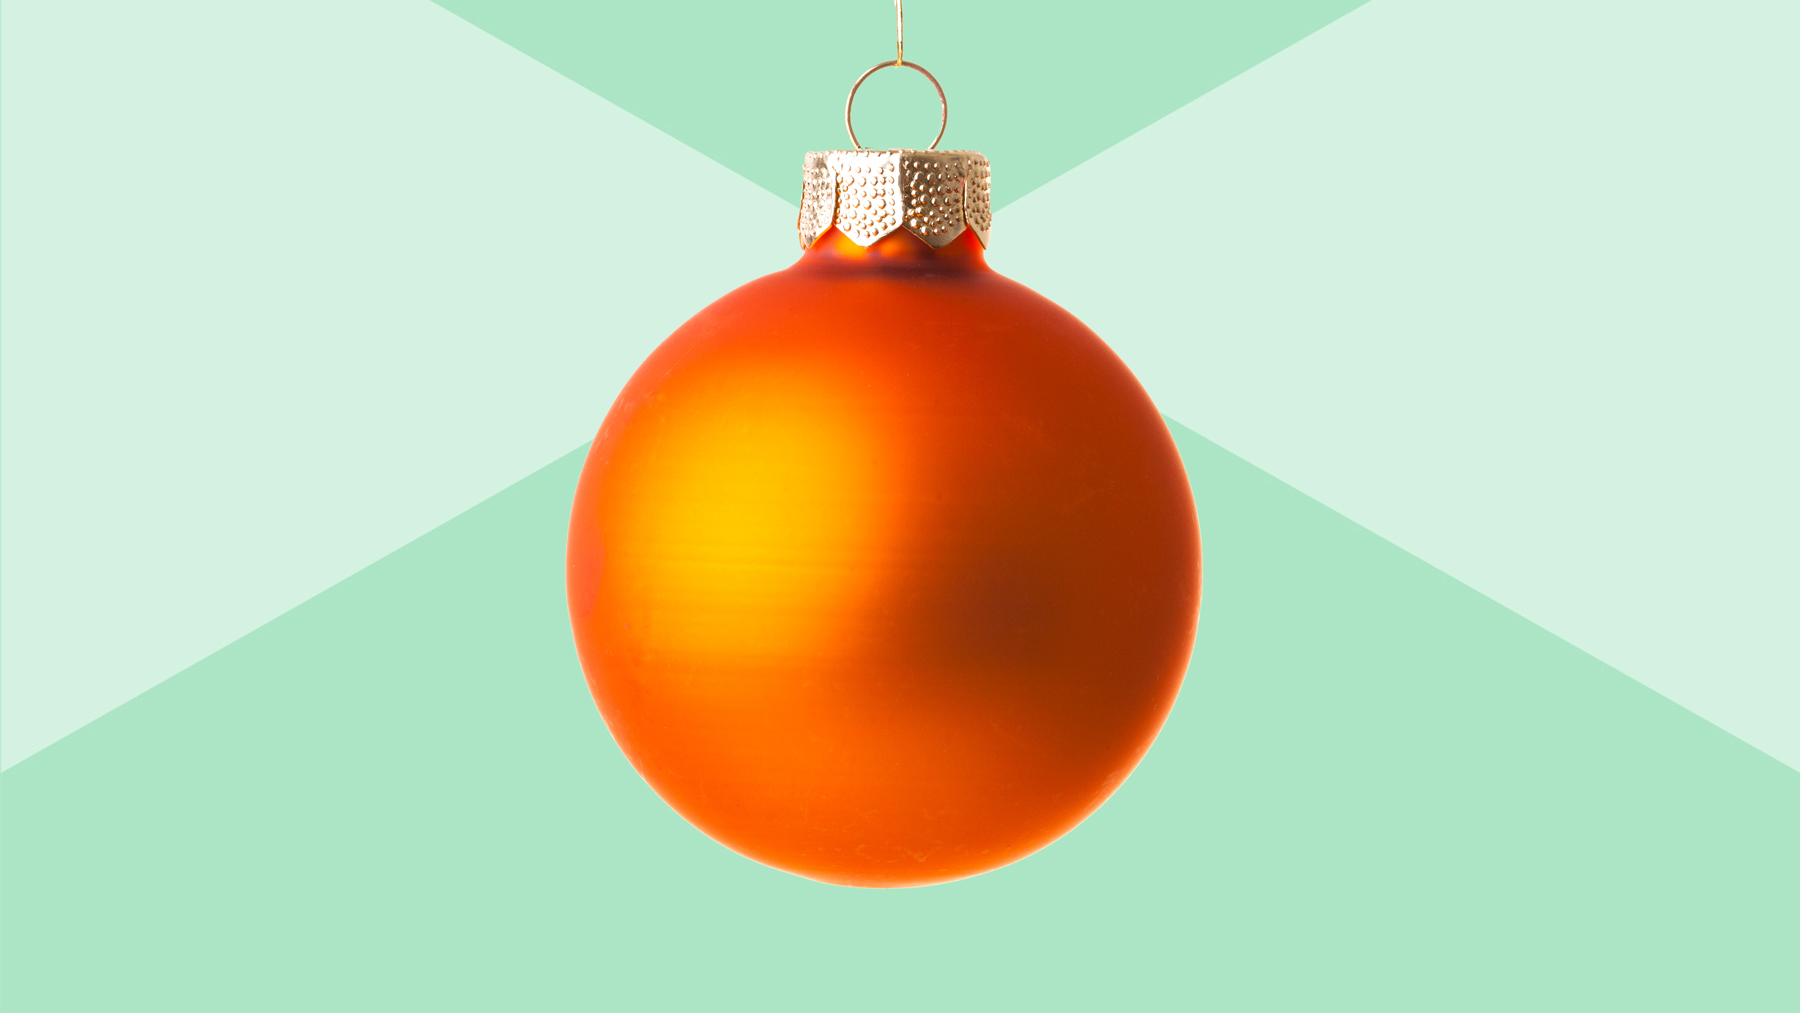 Christmas tree decorations and decorating ideas - orange ornament